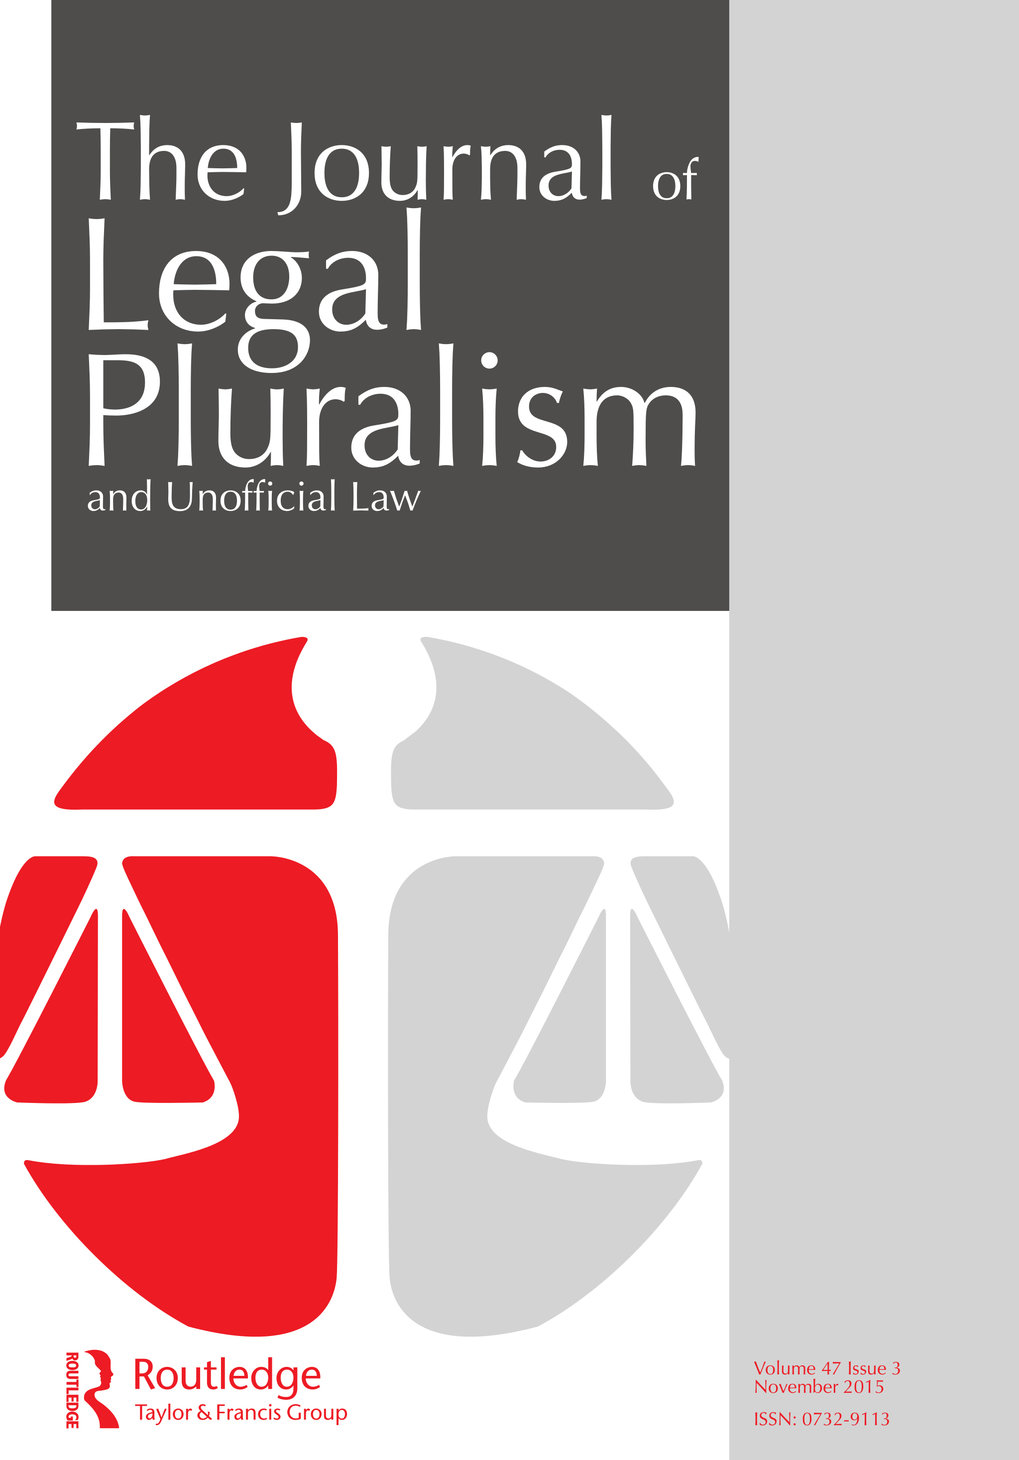 Journal of Legal Pluralism and Unofficial Law. Special Issue: Franz von Benda-Beckmann: Legal Pluralism in the Past and Future